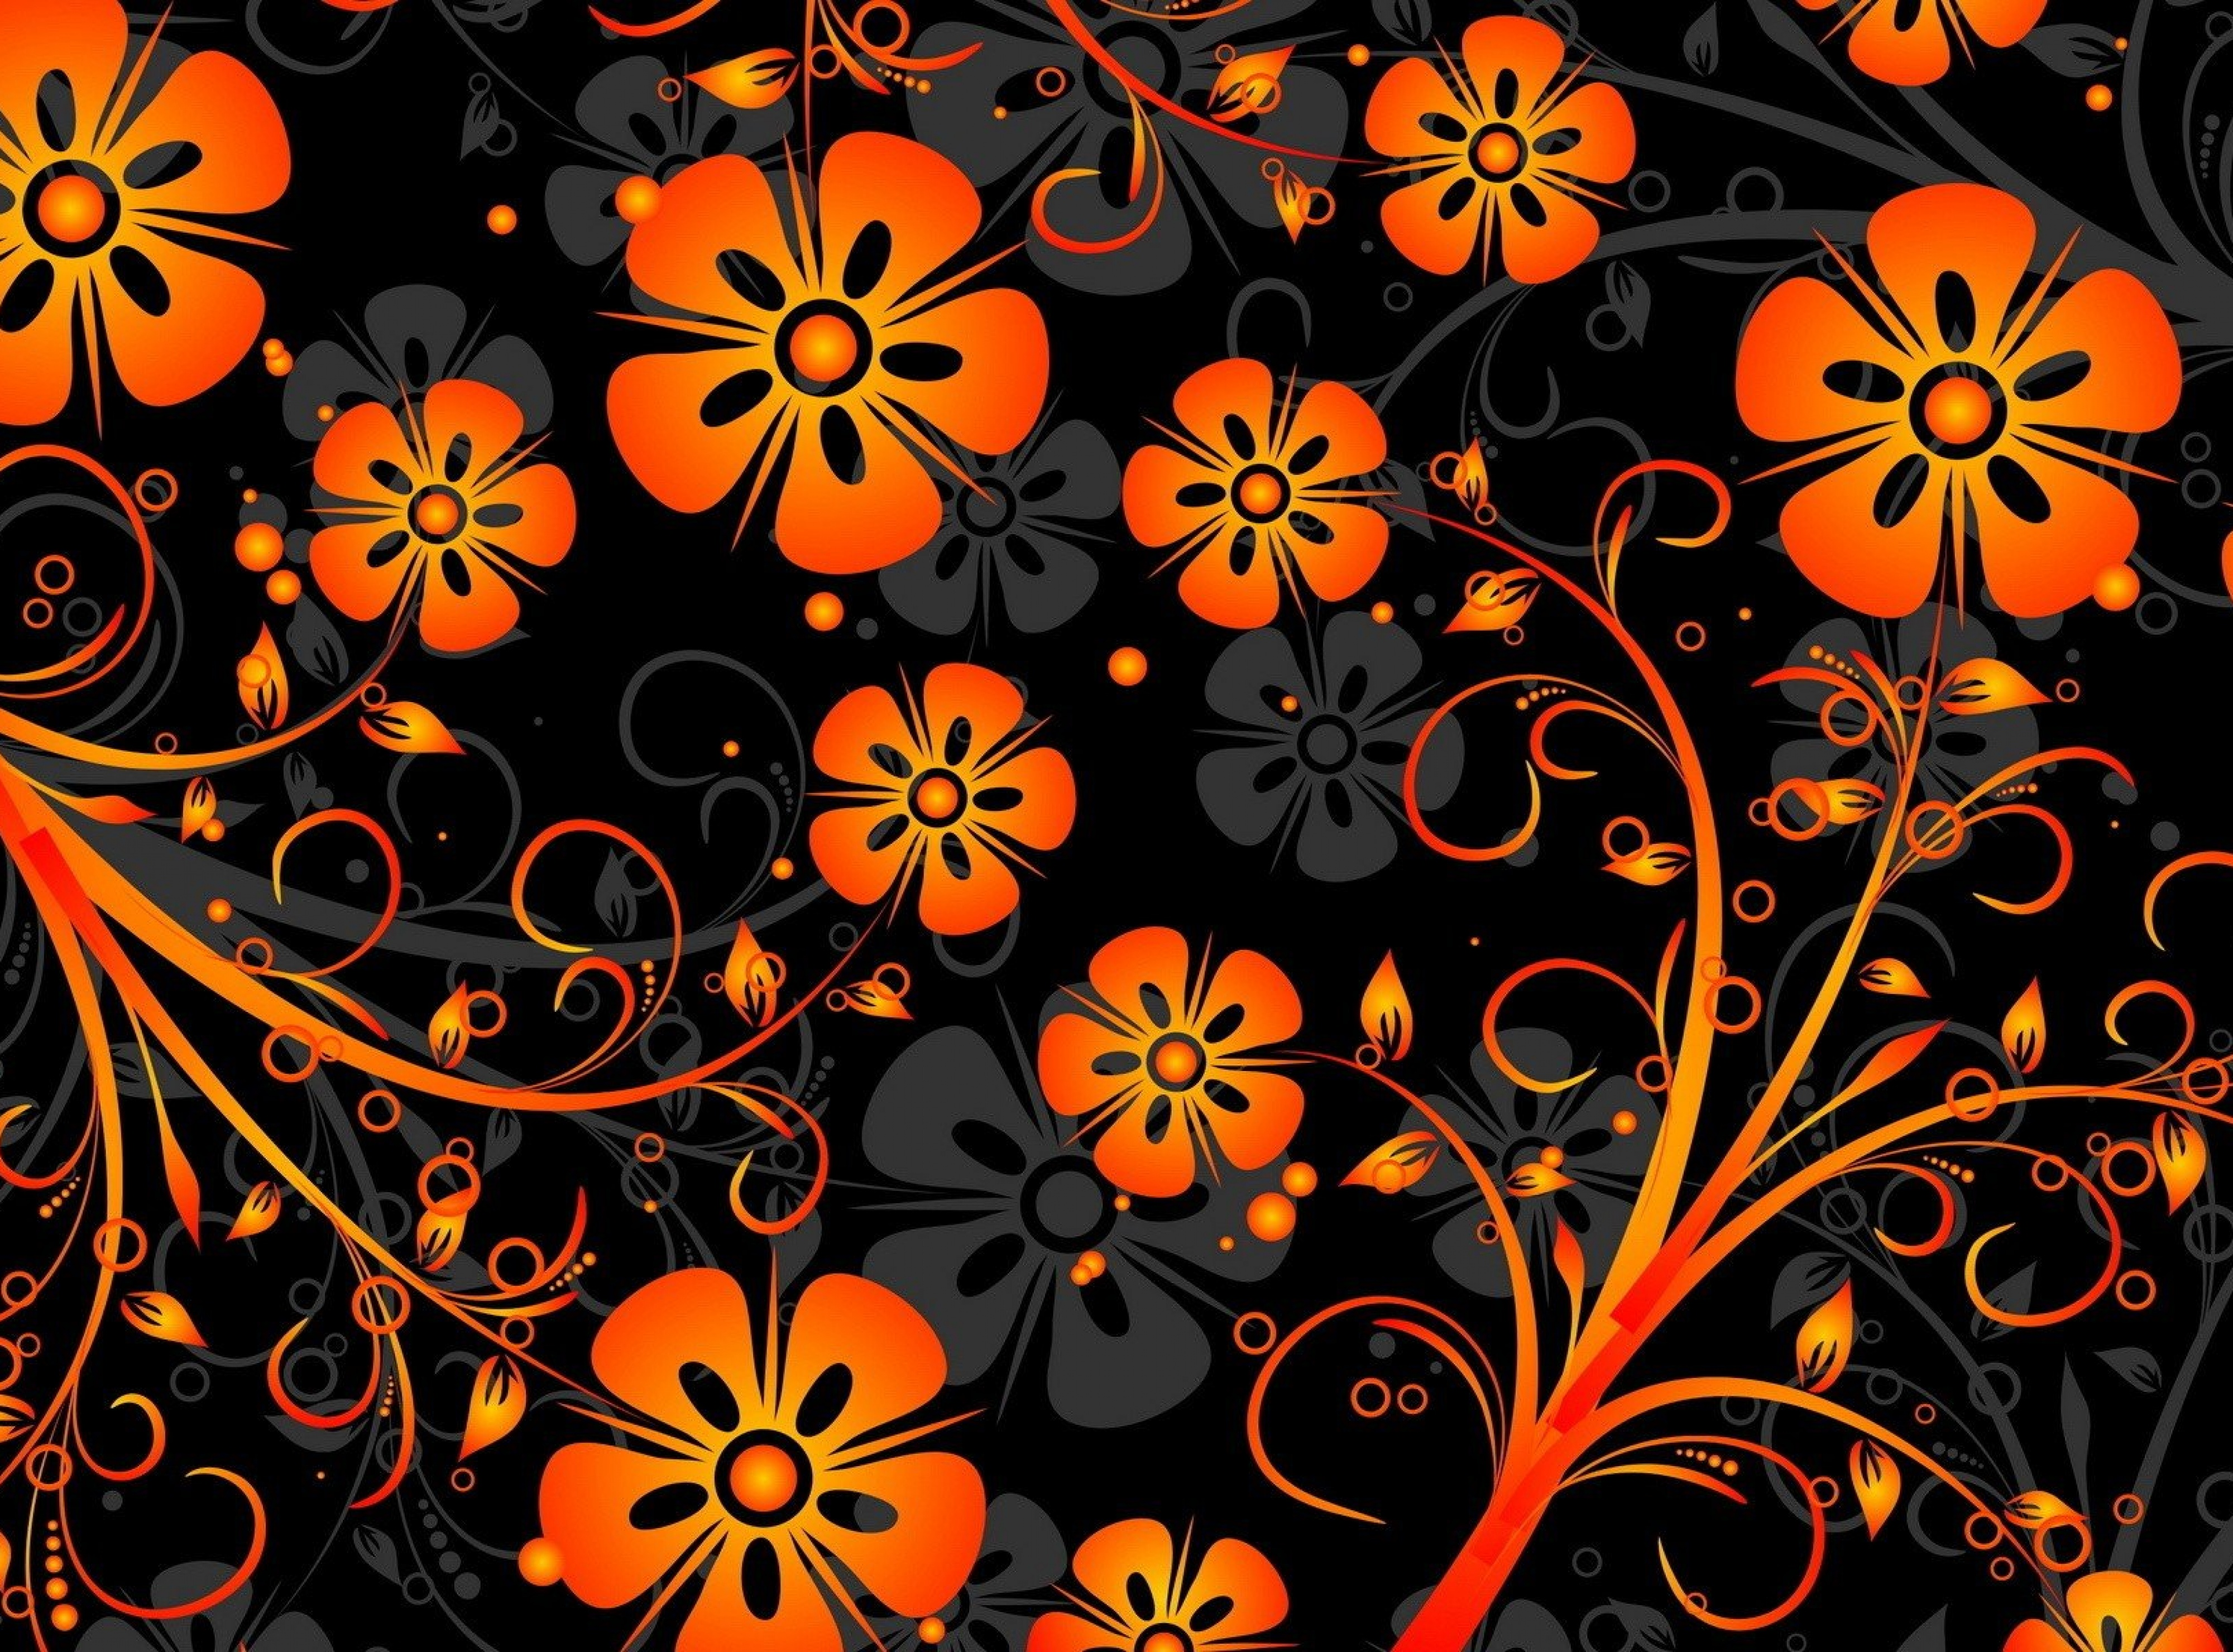 Floral texture pattern wide 4K HD wallpaper 5 | Wallpapers Wolf